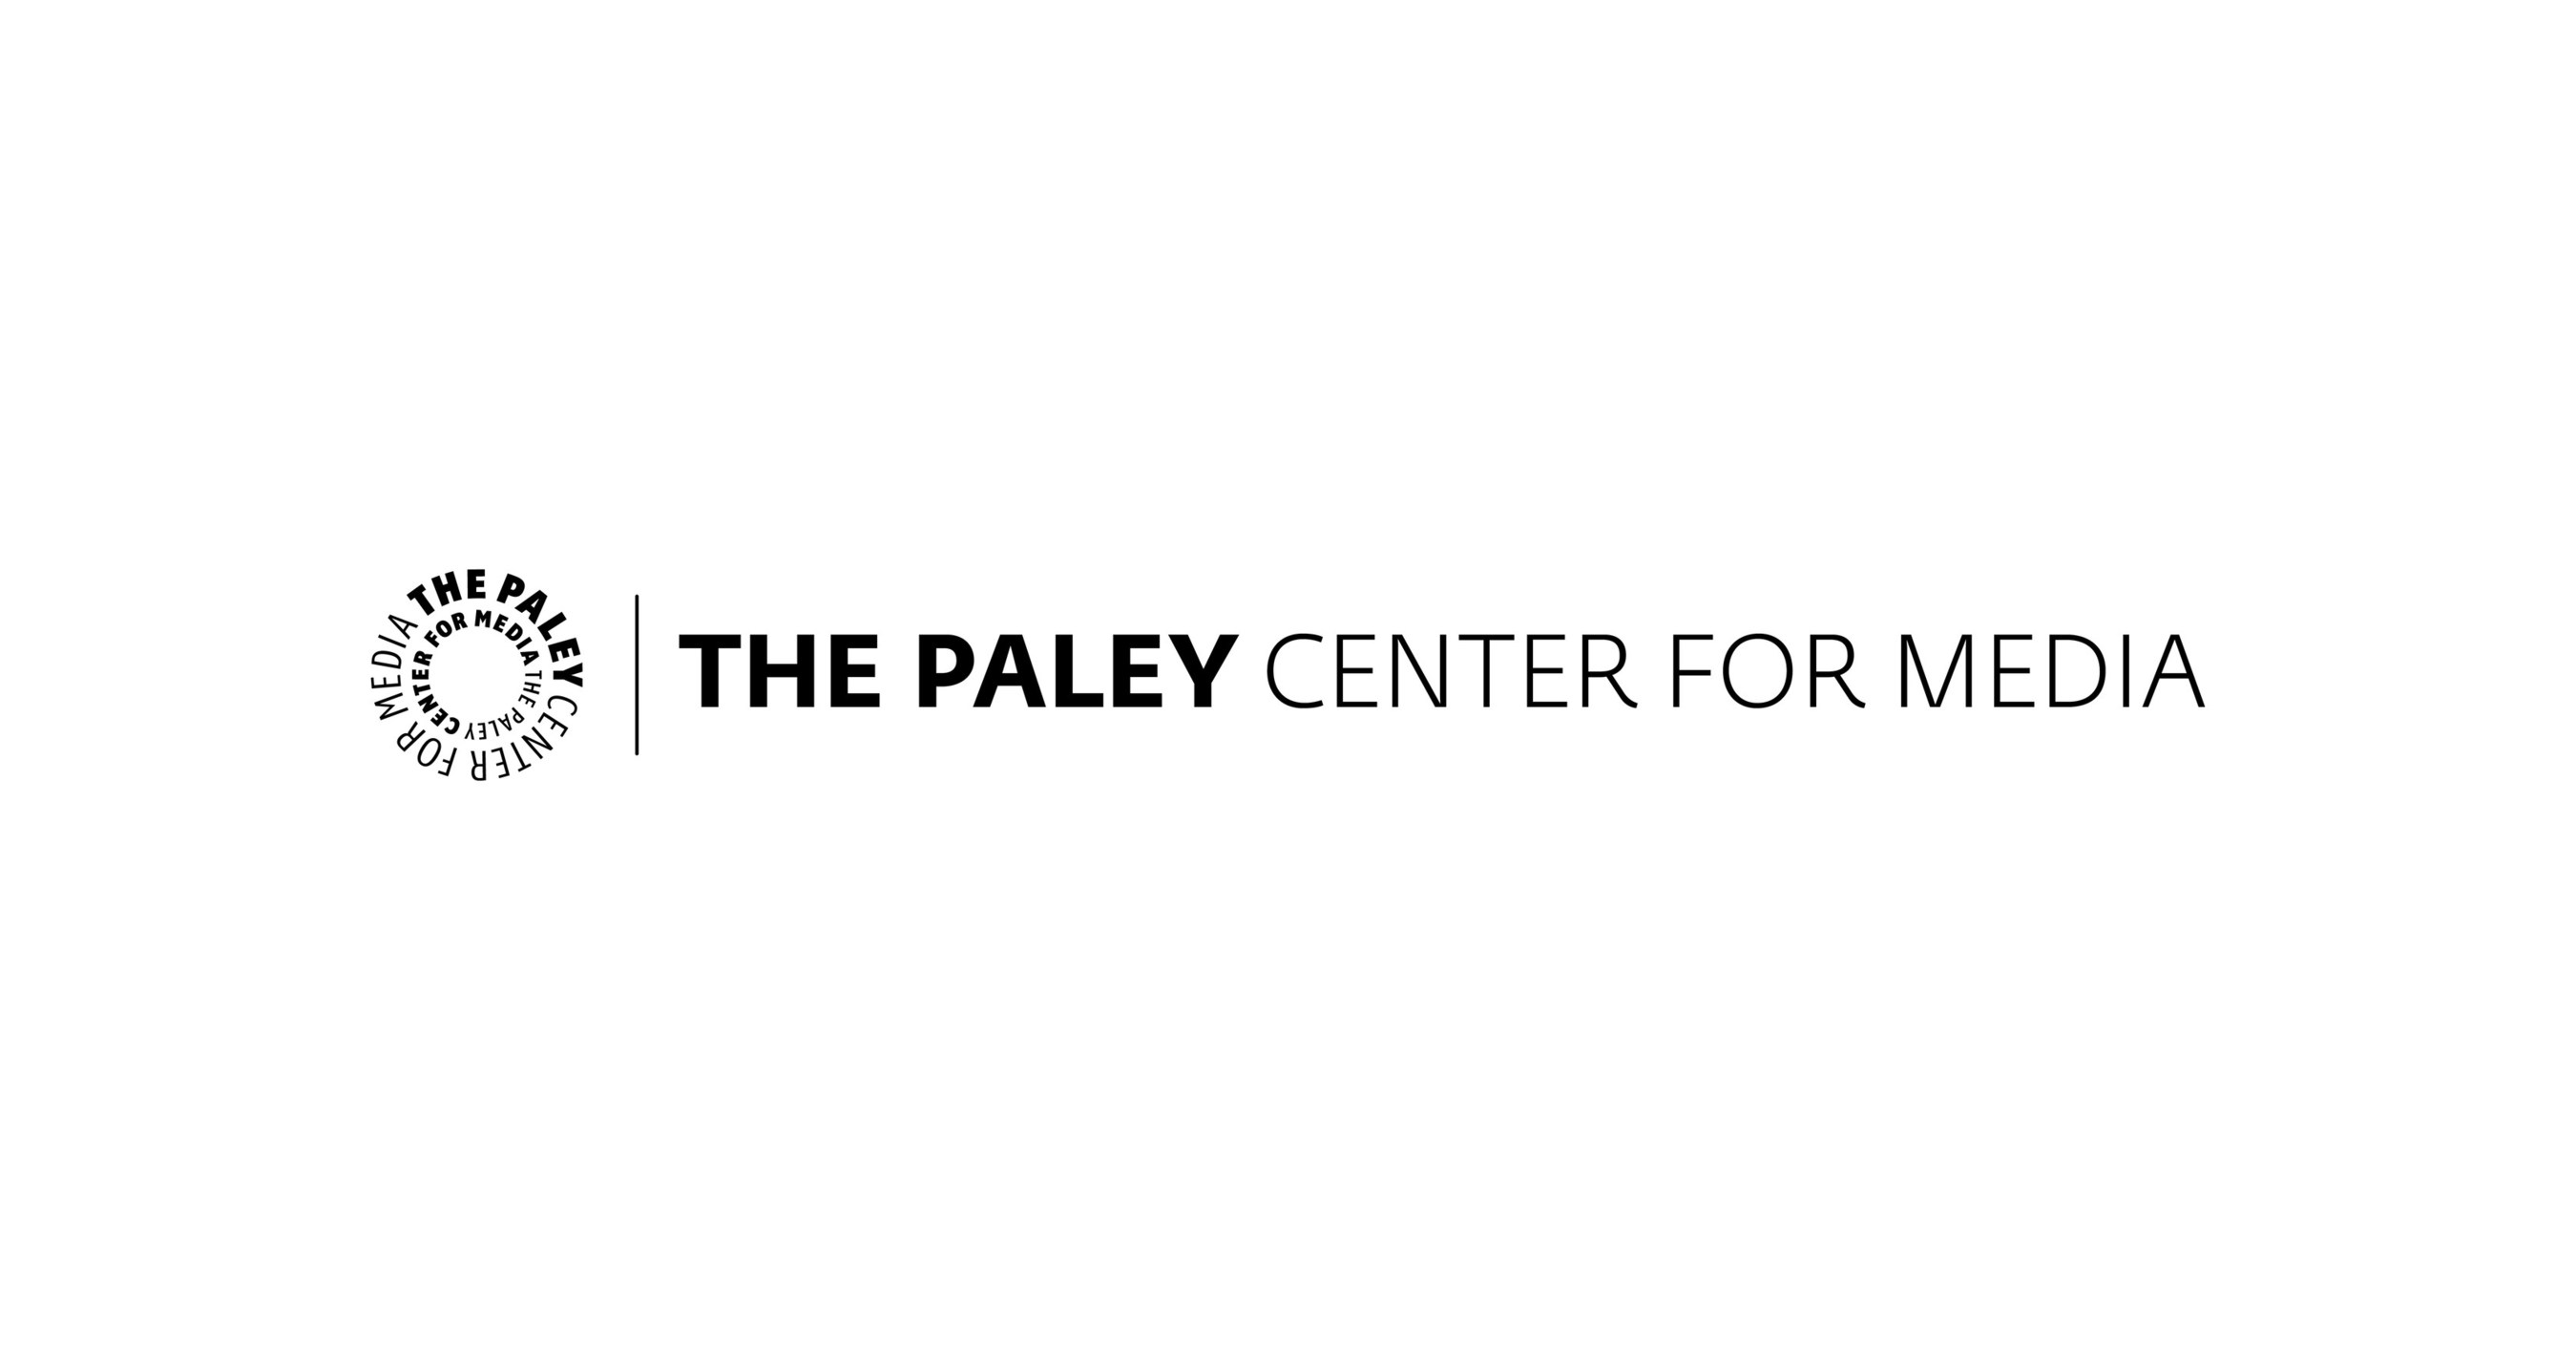 Image Paley Center for Media Announces New PaleyImpact Event: Media's Role in Preparing for Life After COVID-19